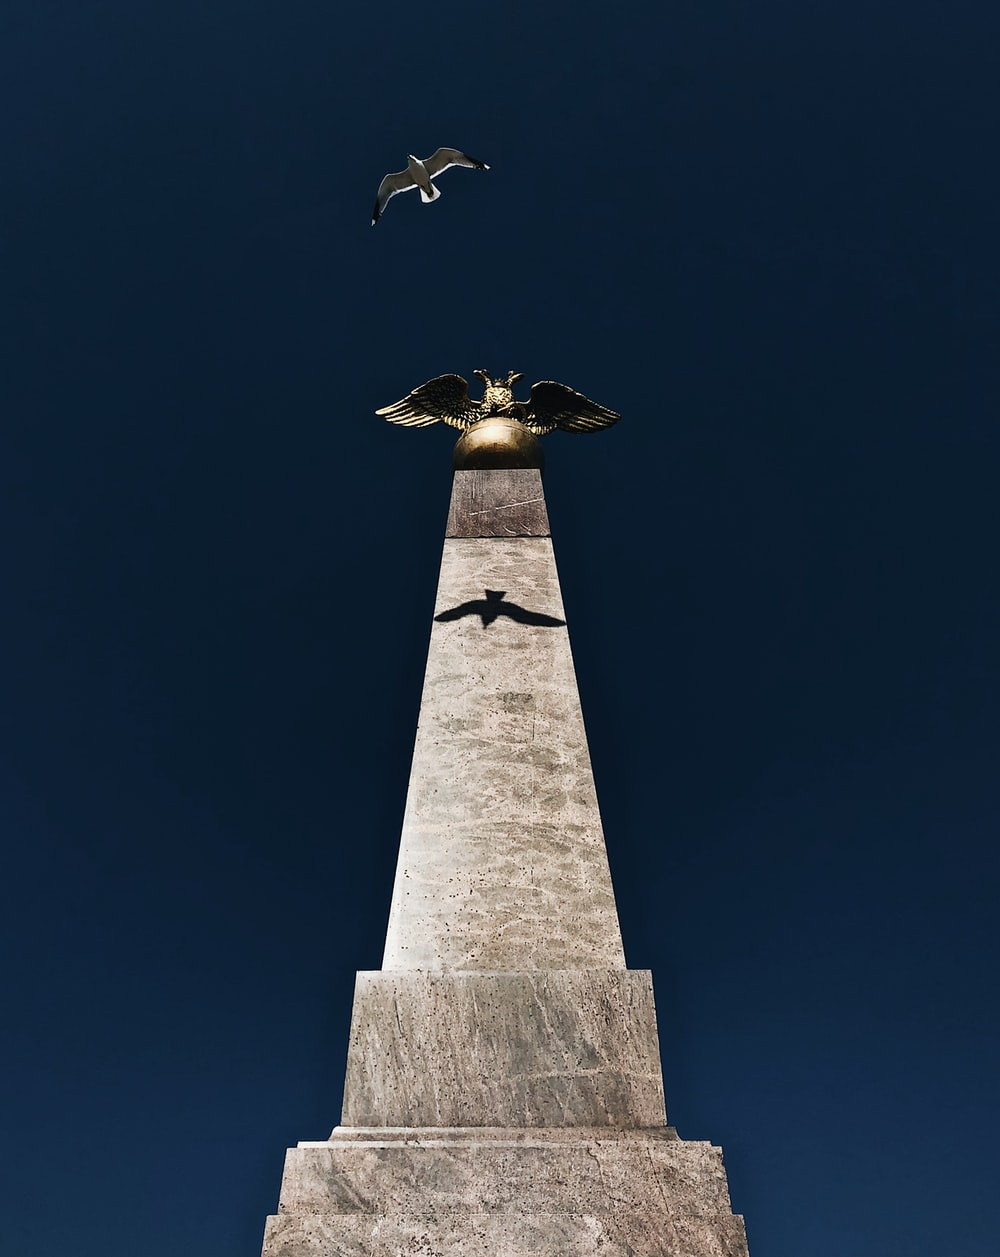 low-angle photography of concrete tower and flying bird